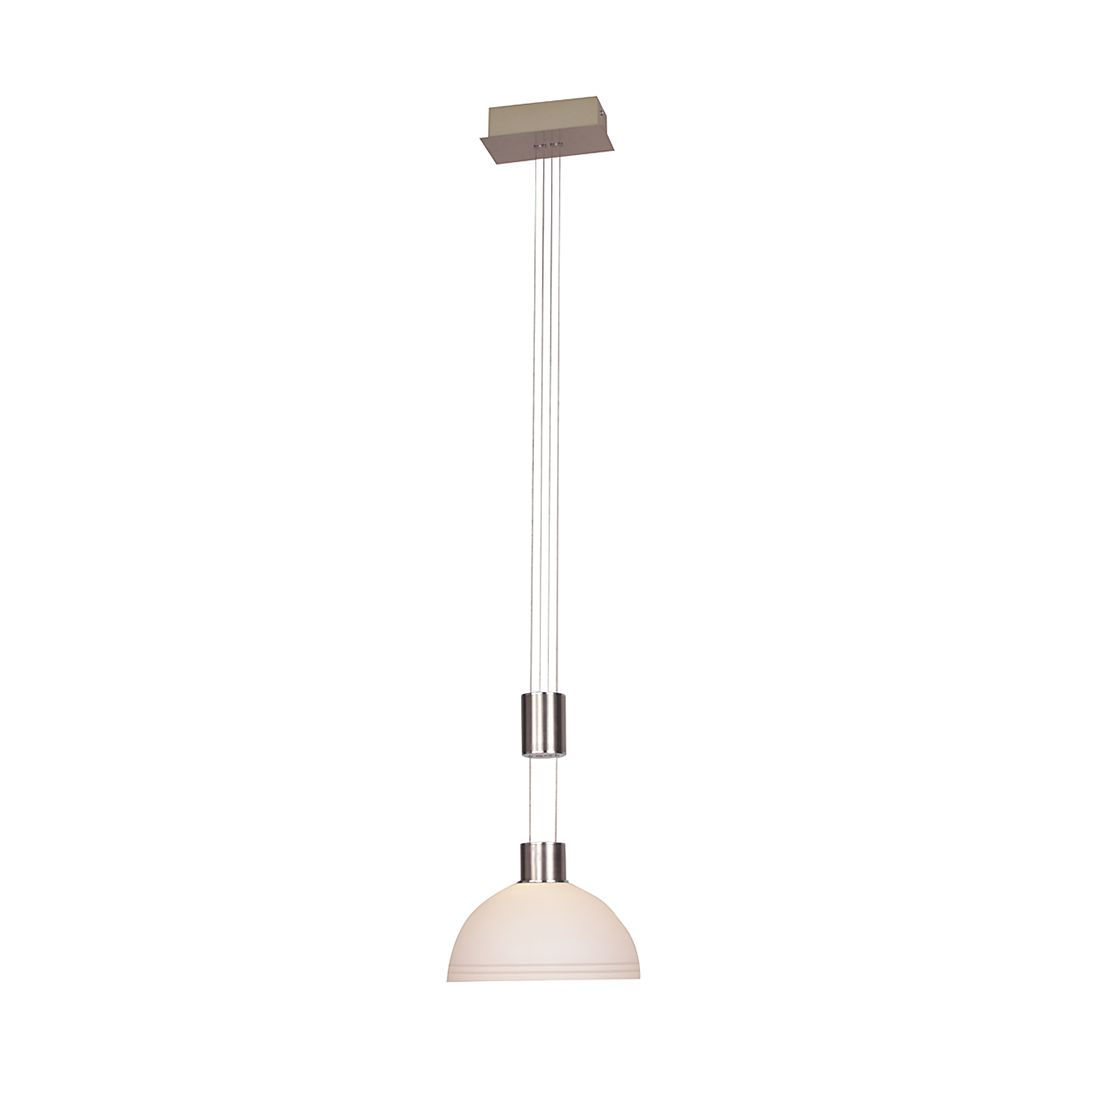 Pendelleuchte CLASS ● Metall/Glas ● 1-flammig- Lux A+